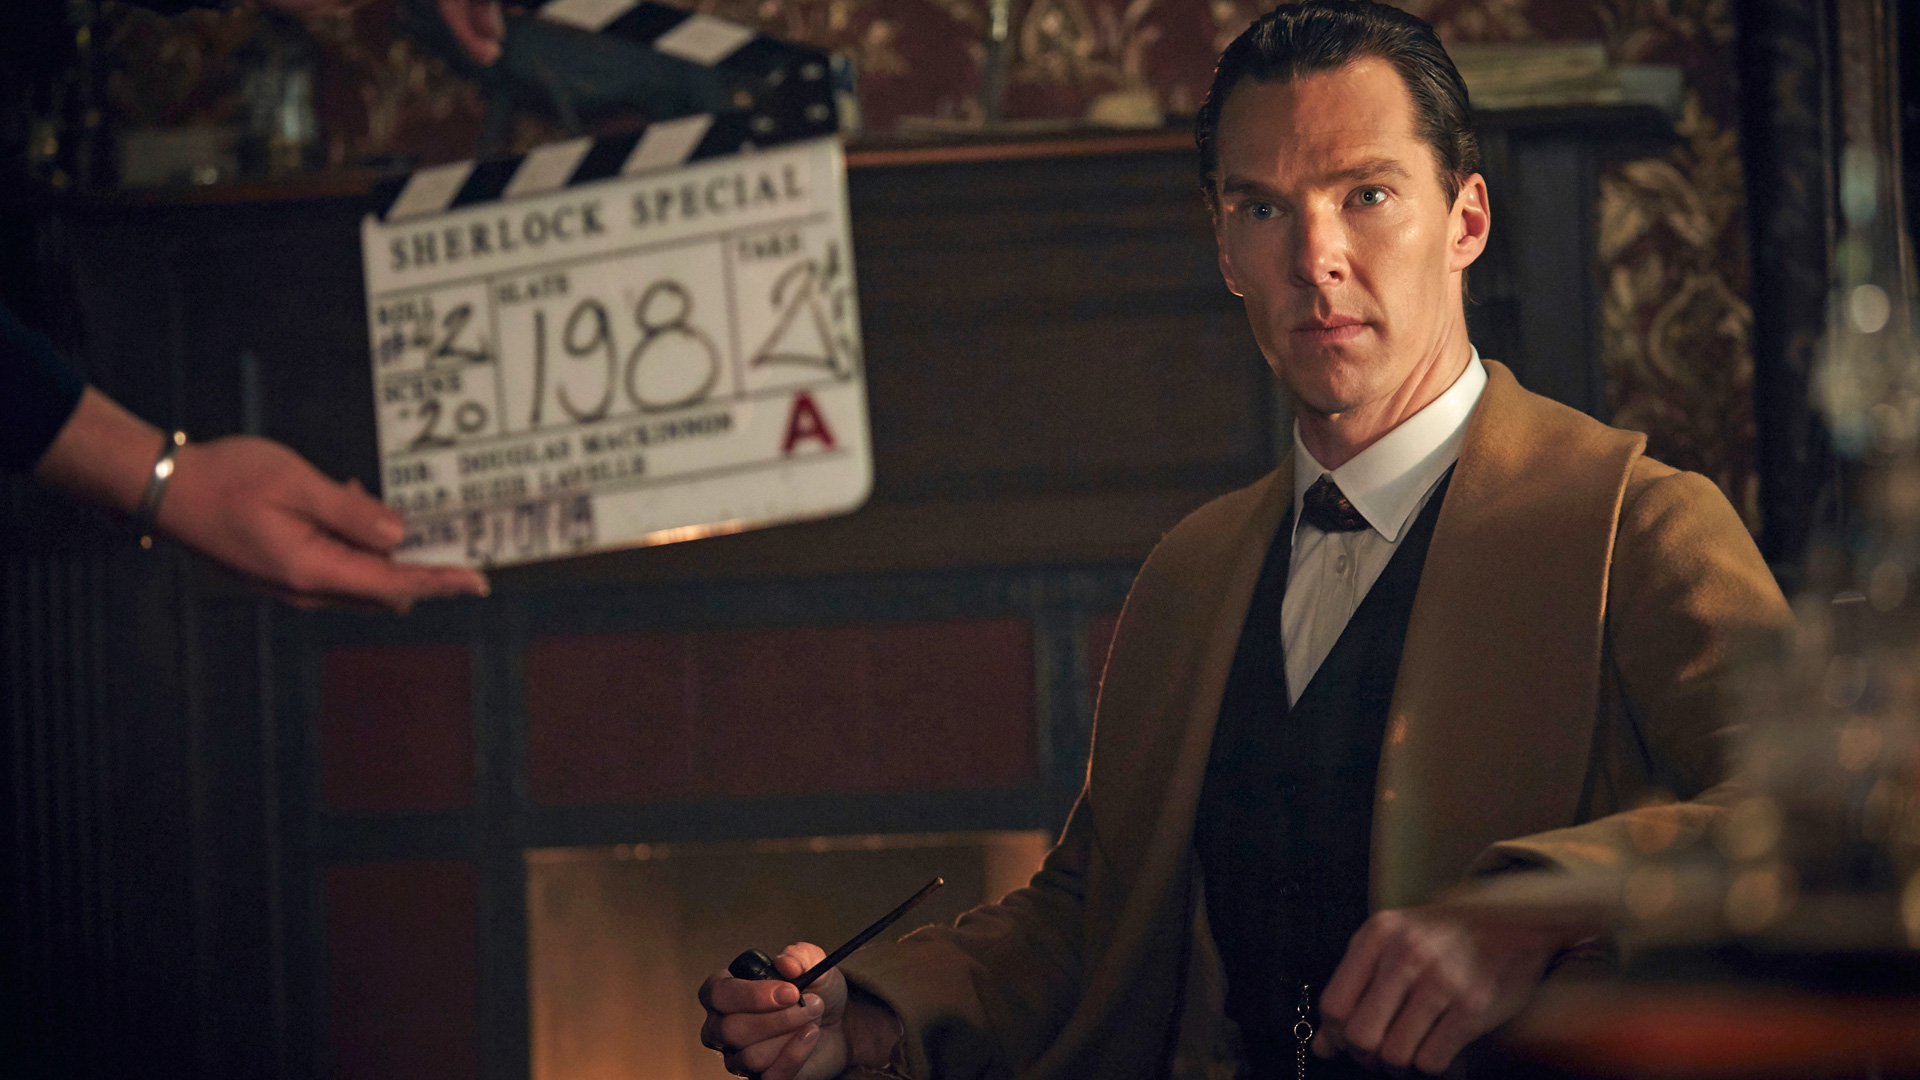 The Sherlock Special, Behind-the-Scenes Slideshow | The Abominable ...